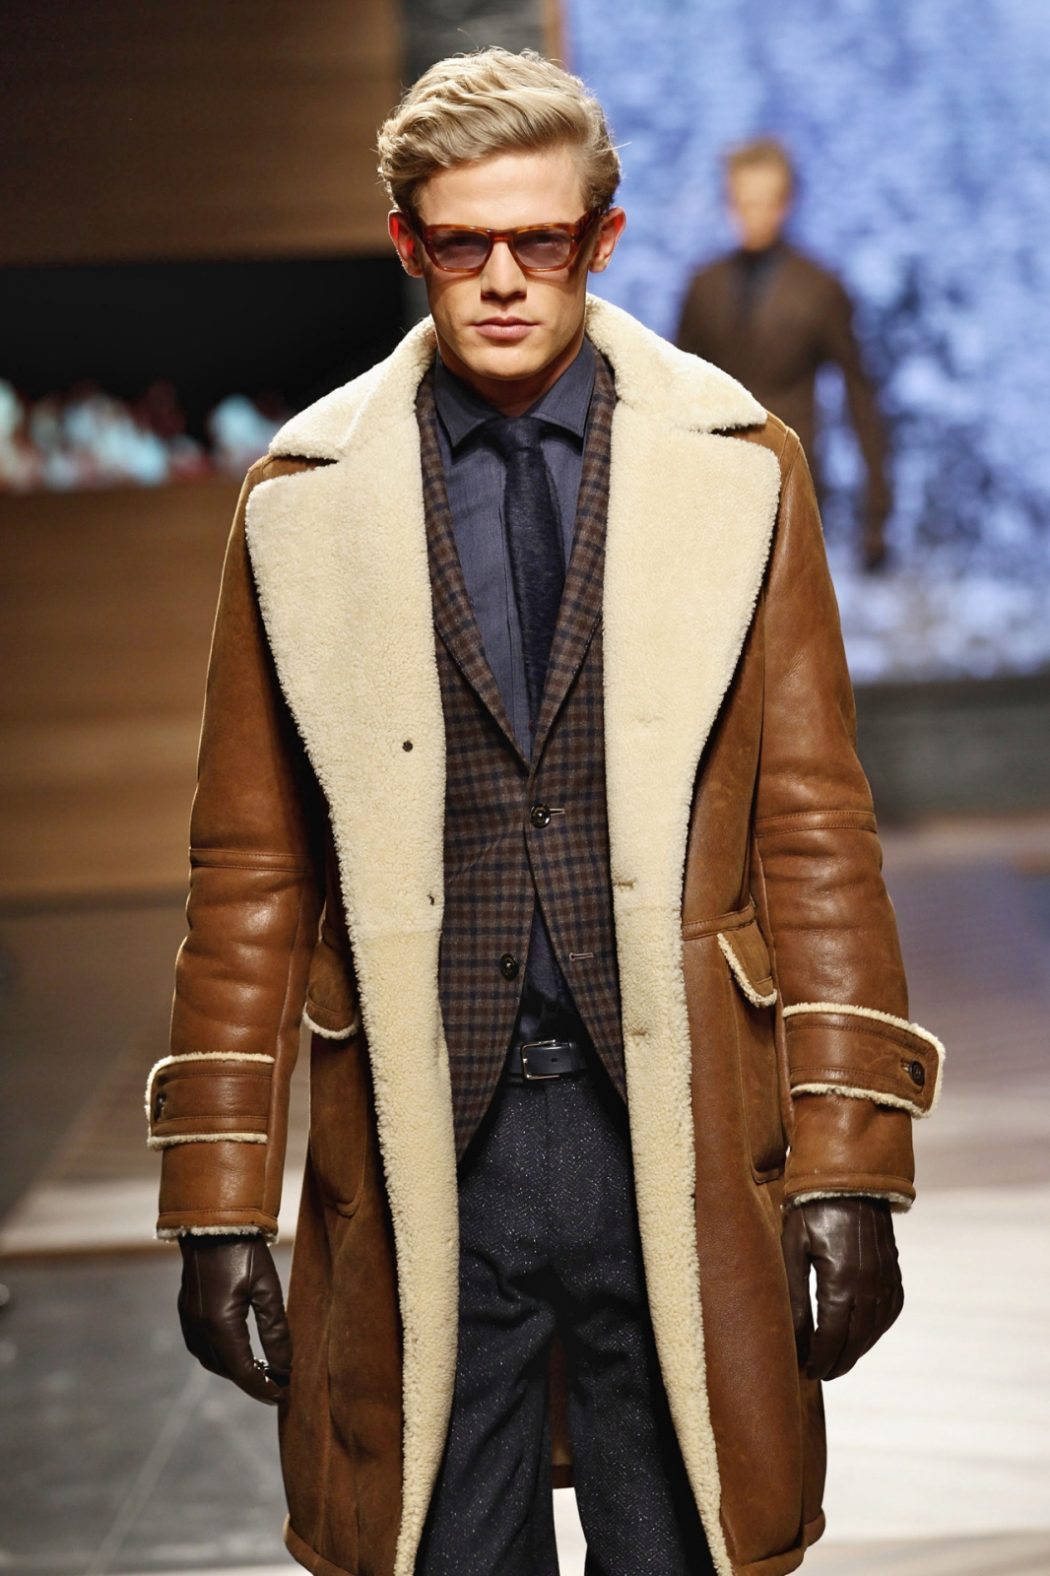 Shearling3 35+ Winter Fashion Trends for Handsome Men in 2020